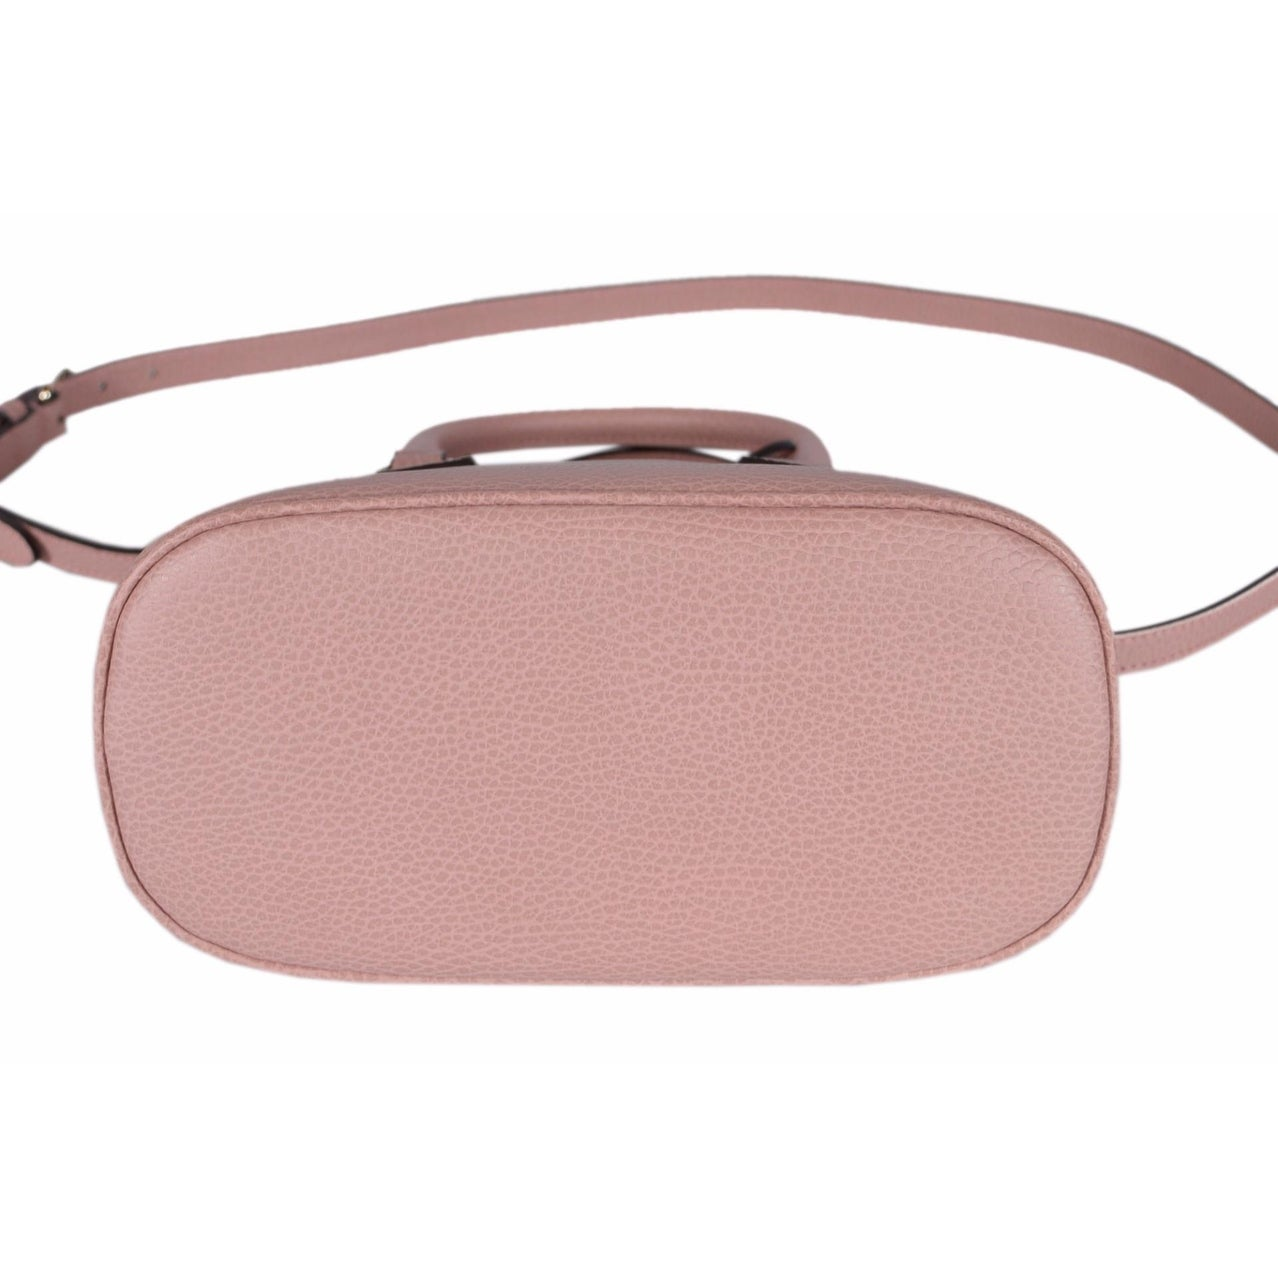 Shop Gucci 449661 Soft Pink Leather 2-Way Convertible GG Charm Small ...